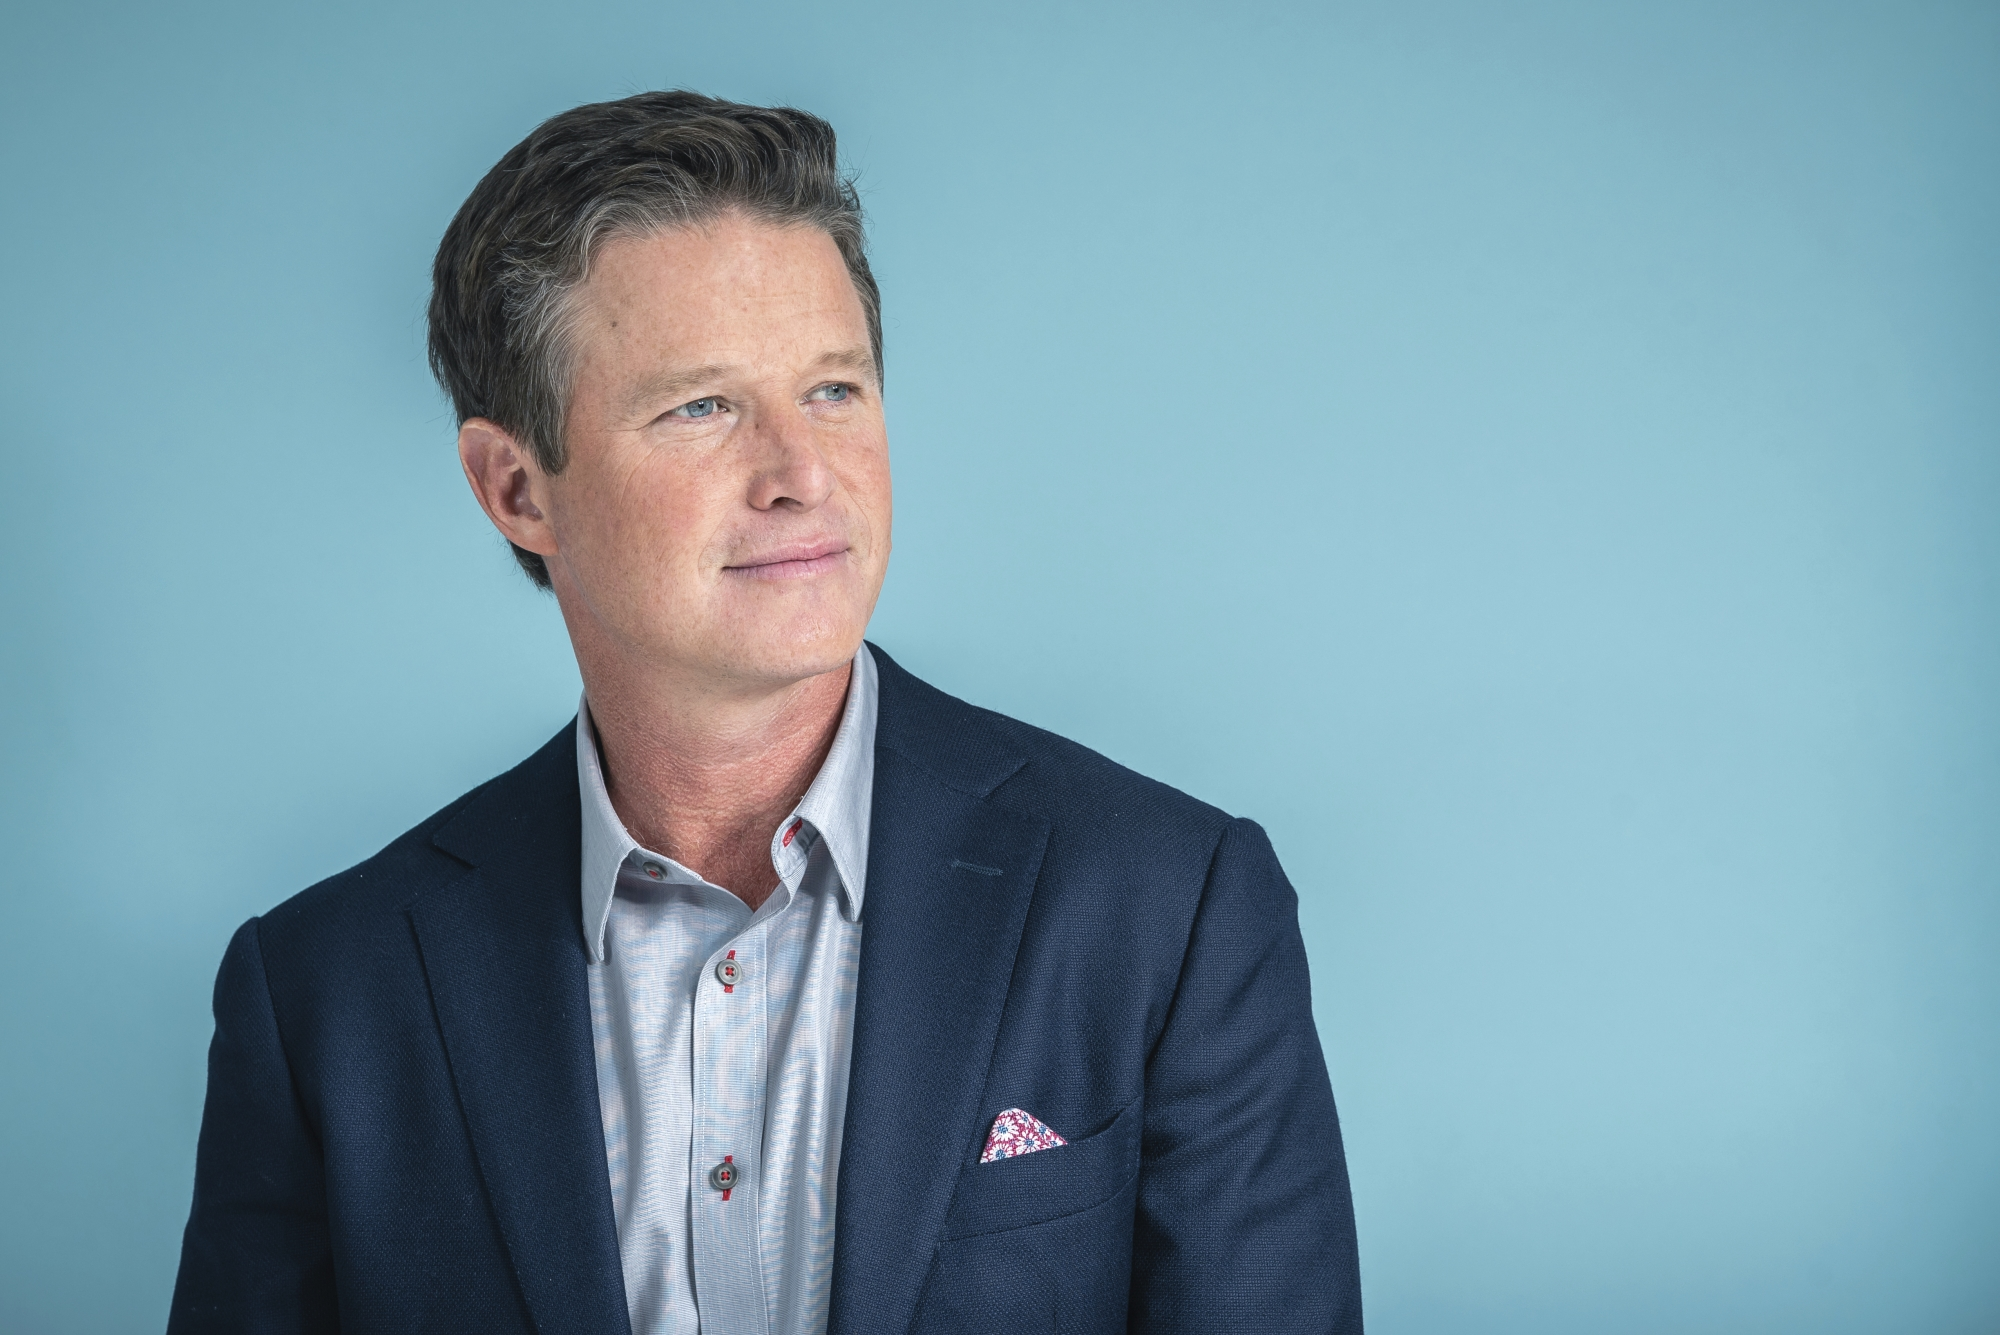 Billy Bush gets a second chance at TV show after firing | WTOP